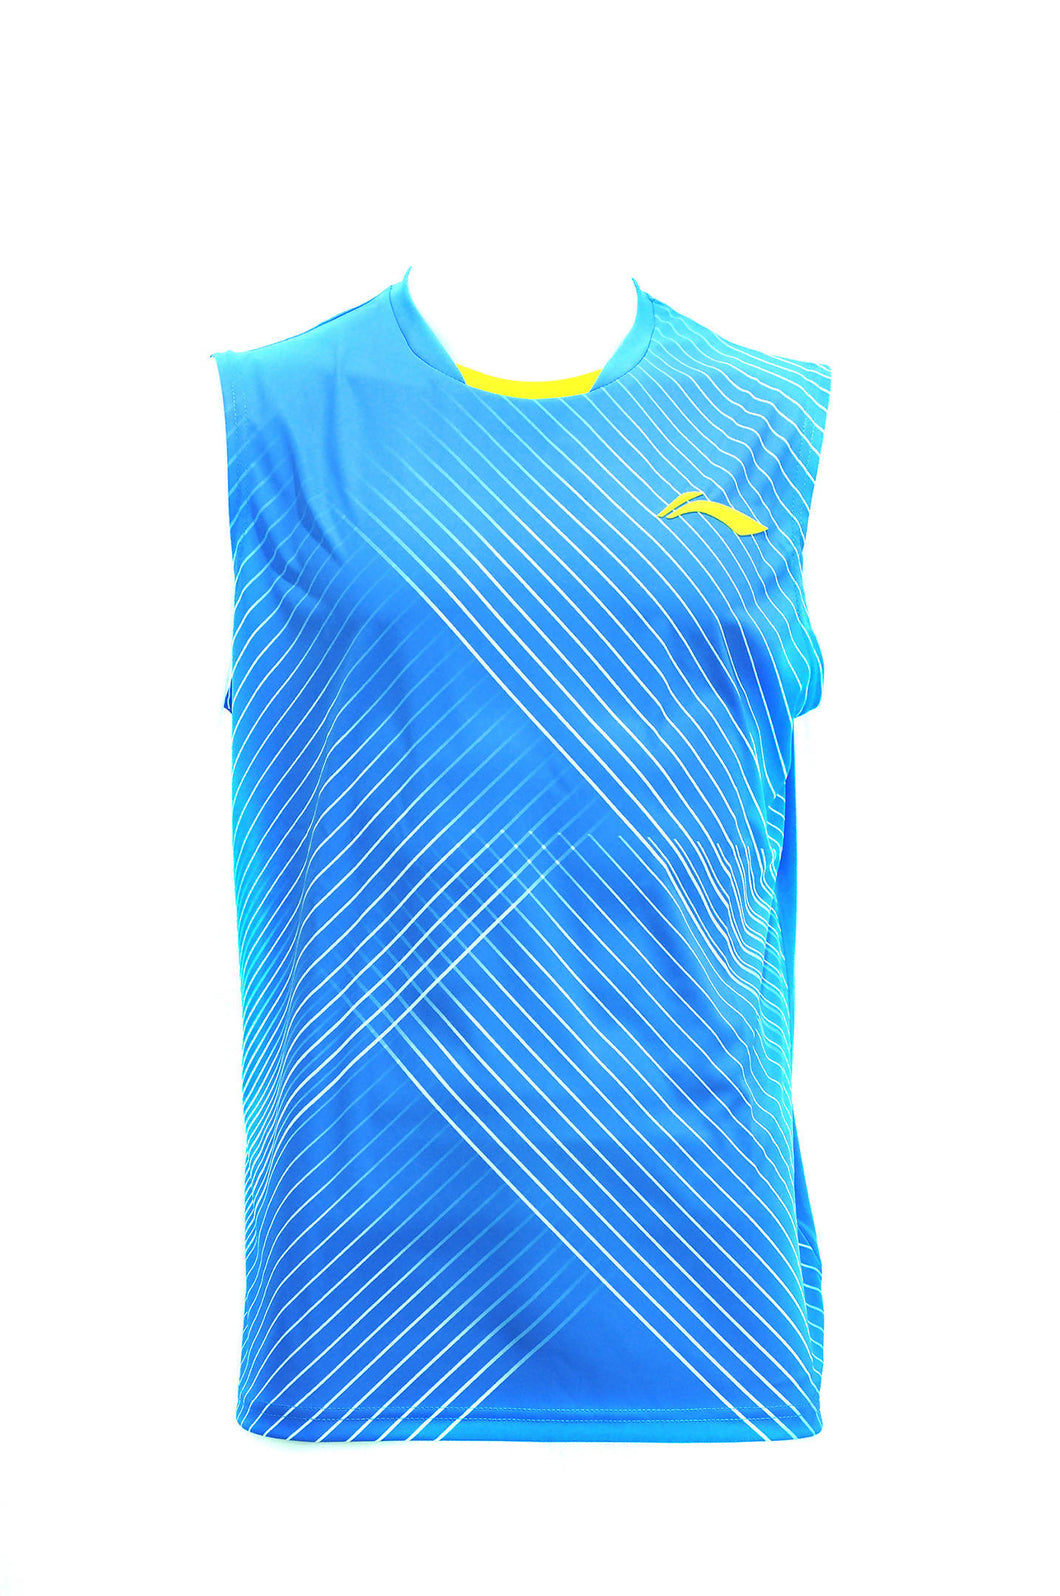 Li-Ning - Sleeveless Tee - Lite Blue